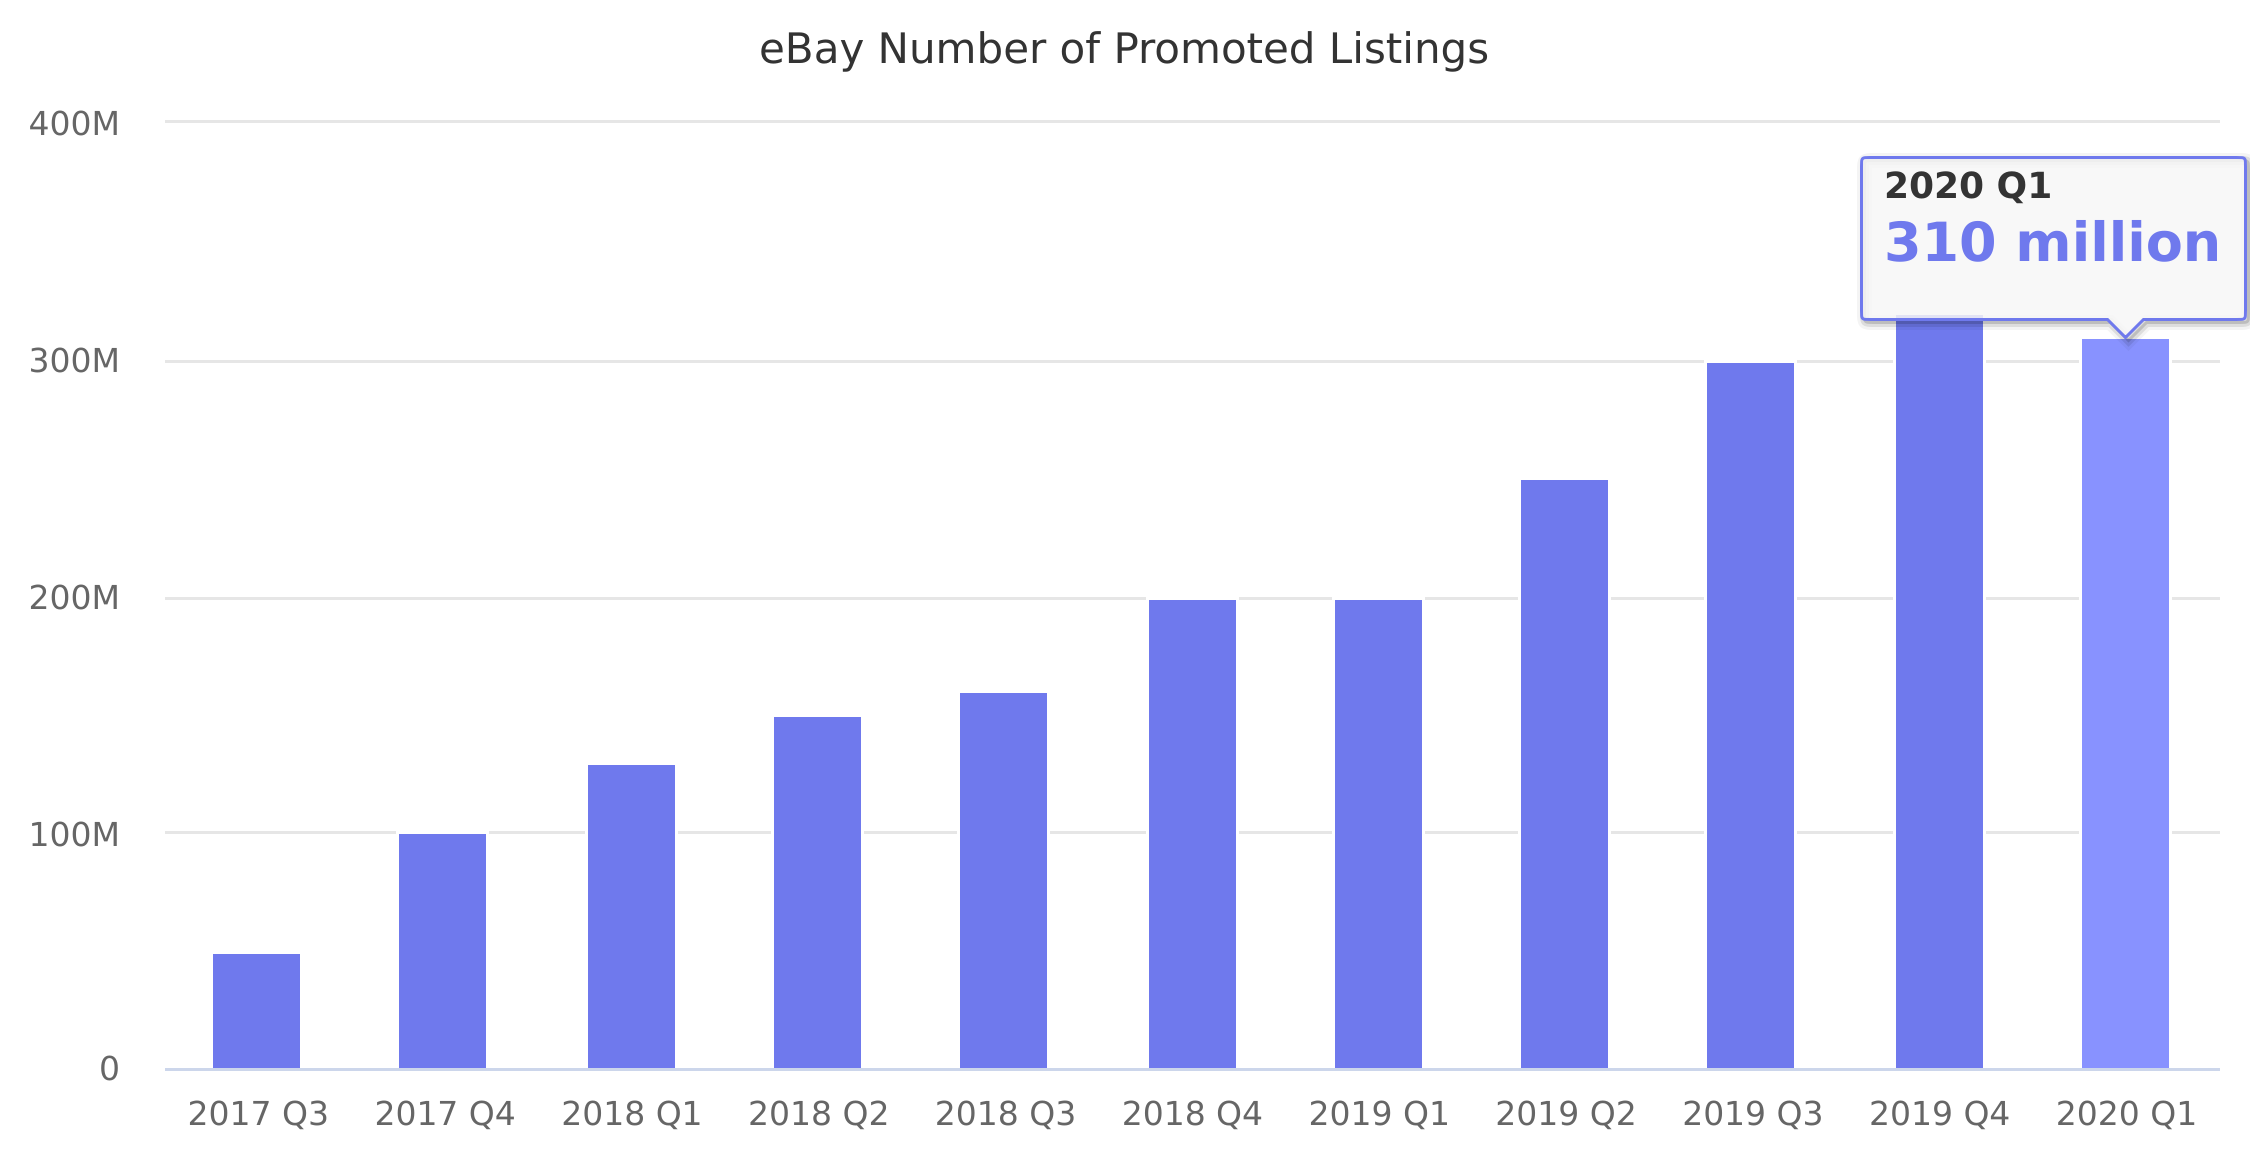 eBay Number of Promoted Listings